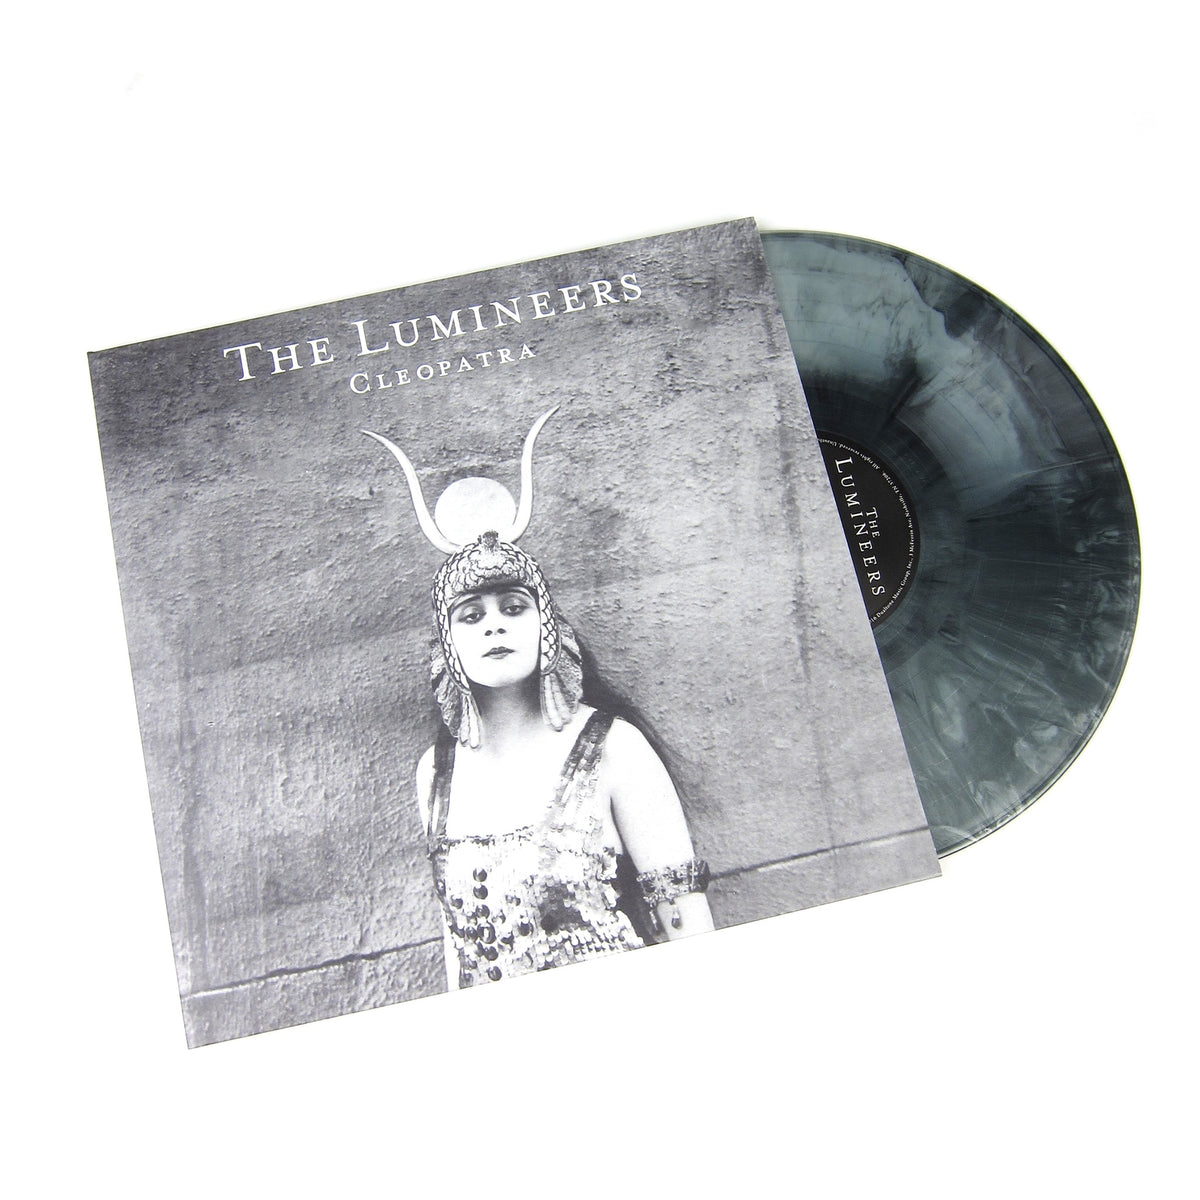 The Lumineers: Cleopatra (Indie Exclusive Colored Vinyl) Vinyl LP